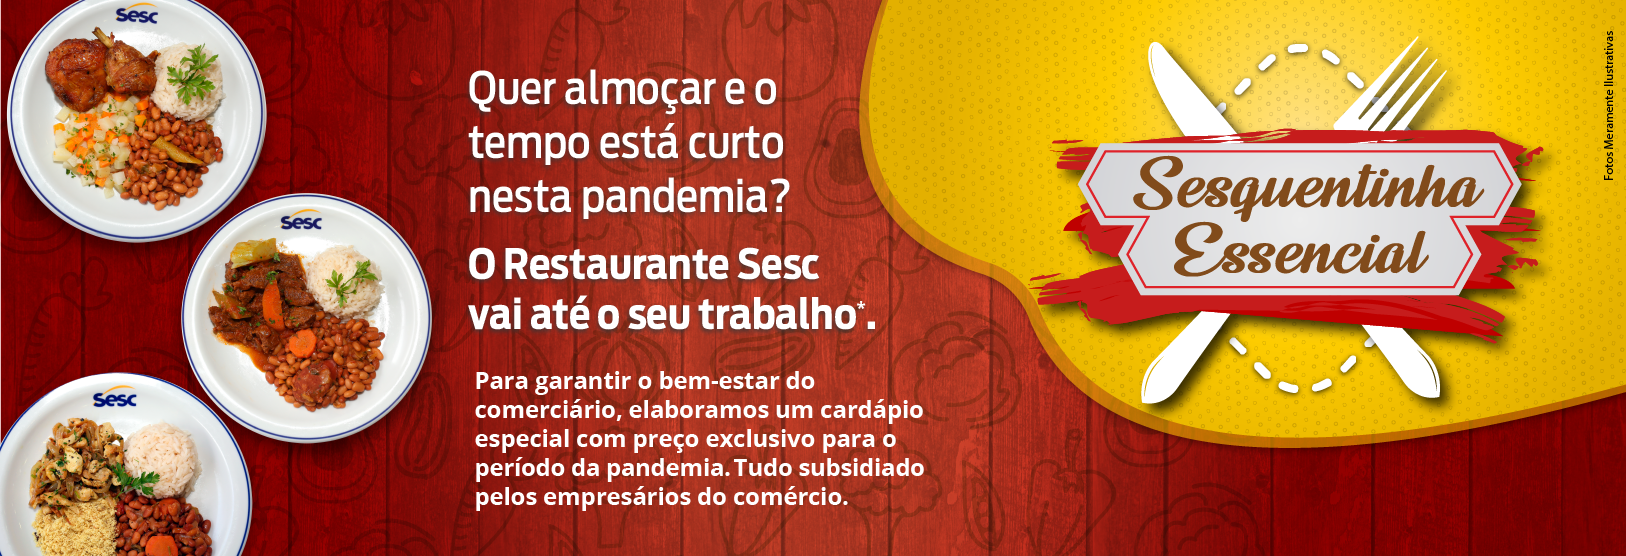 Sesquentinha-Banner-Site3_Banner-site